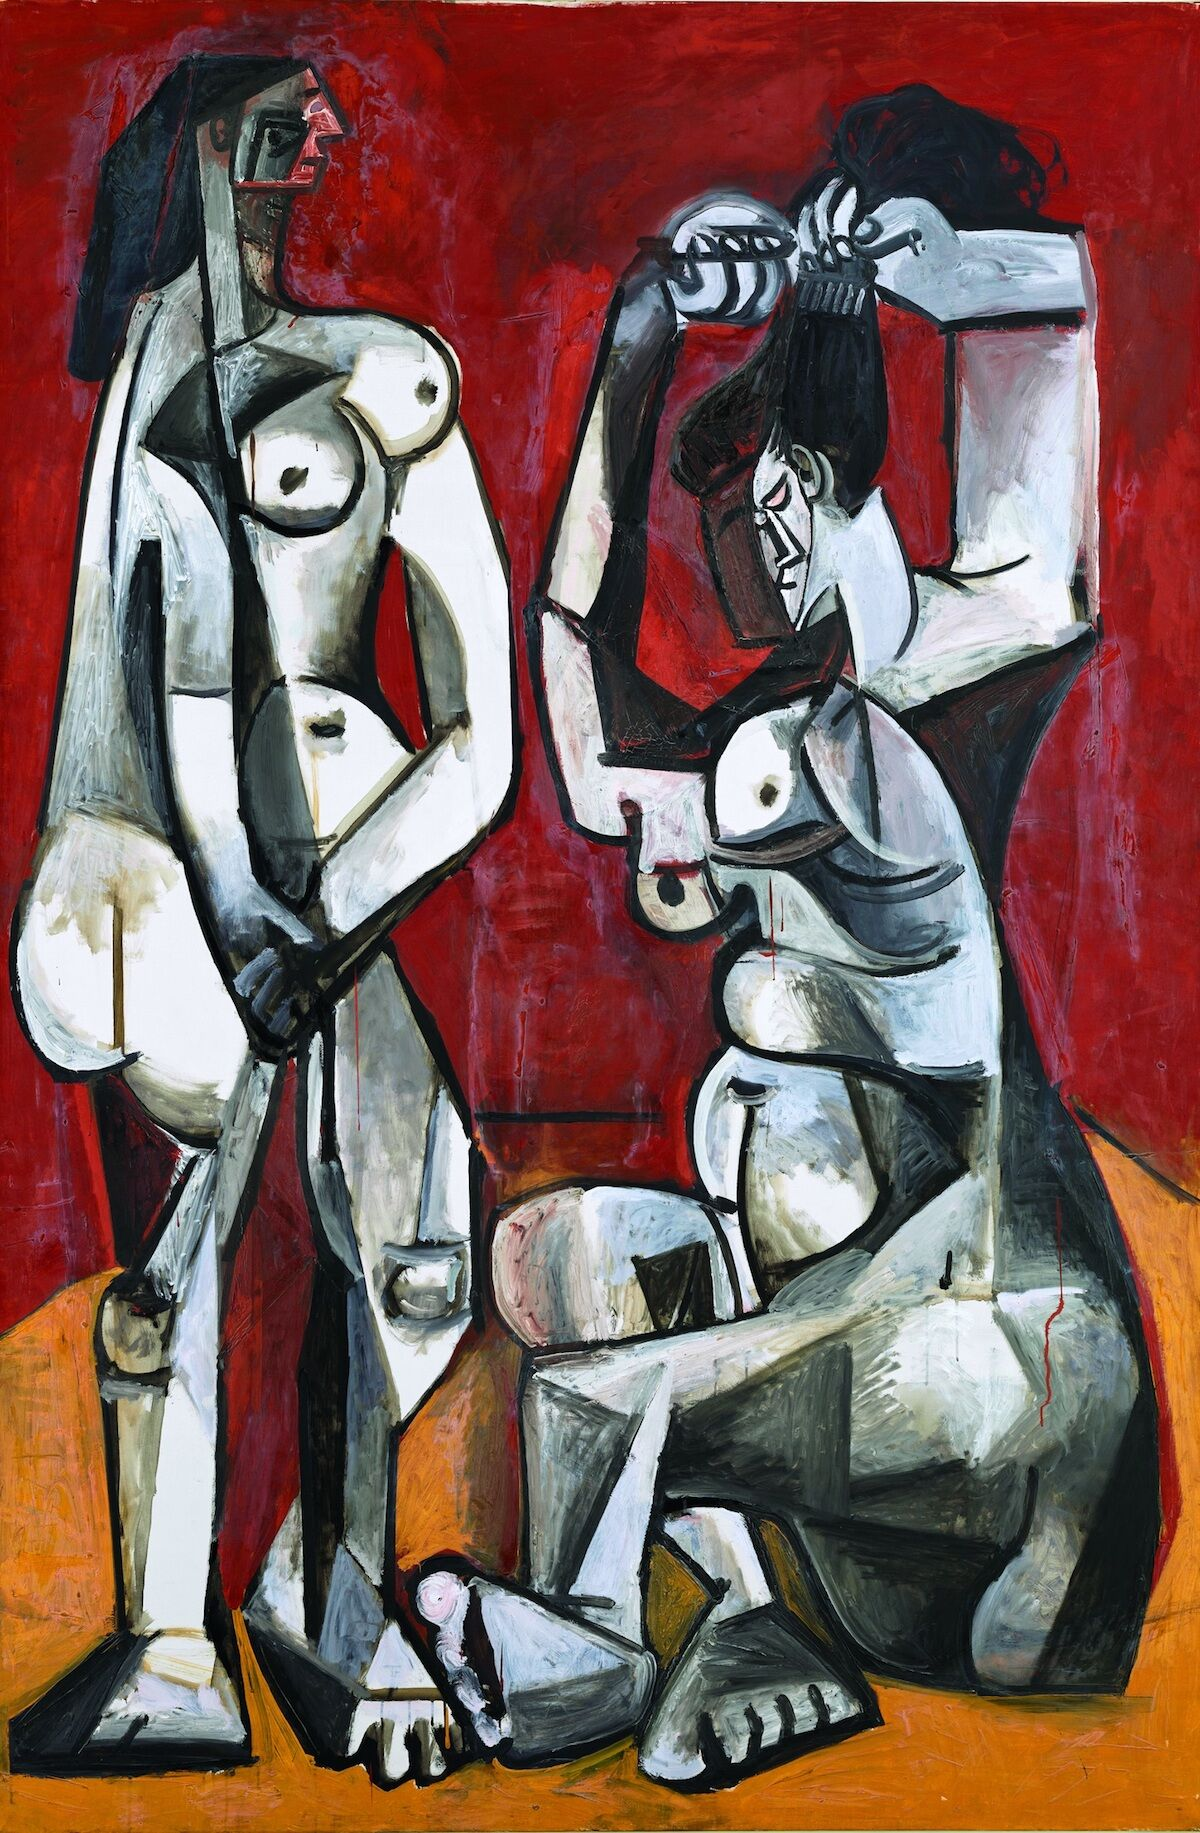 Pablo Picasso, Women at Their Toilette, 1956, oil on canvas. Courtesy and © Estate of Picasso / SODRAC (2018). Photo © RMN-Grand Palais / Art Resource, NY / Mathieu Rabeau.